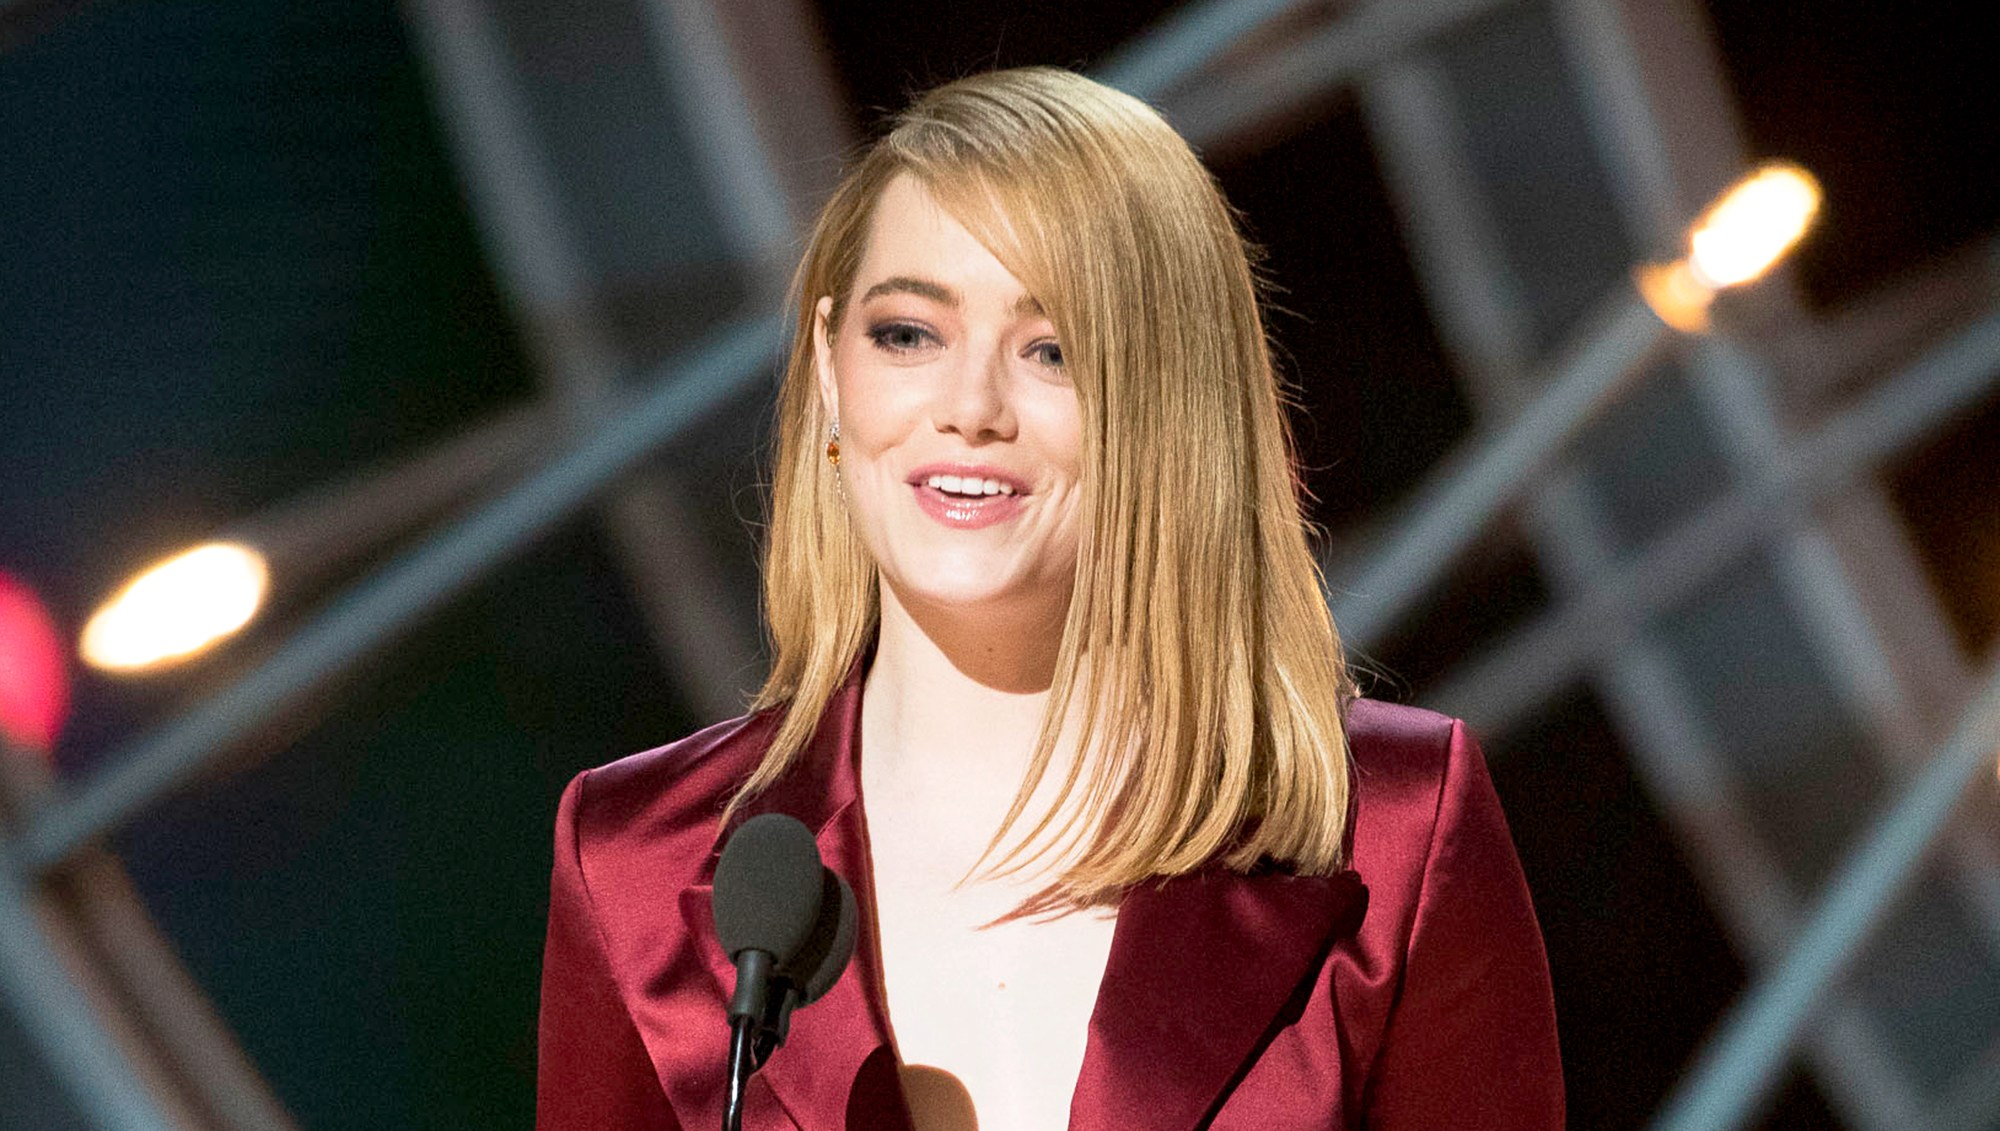 Emma Stone during the 90th Annual Academy Awards show on March 4, 2018 in Hollywood, California.